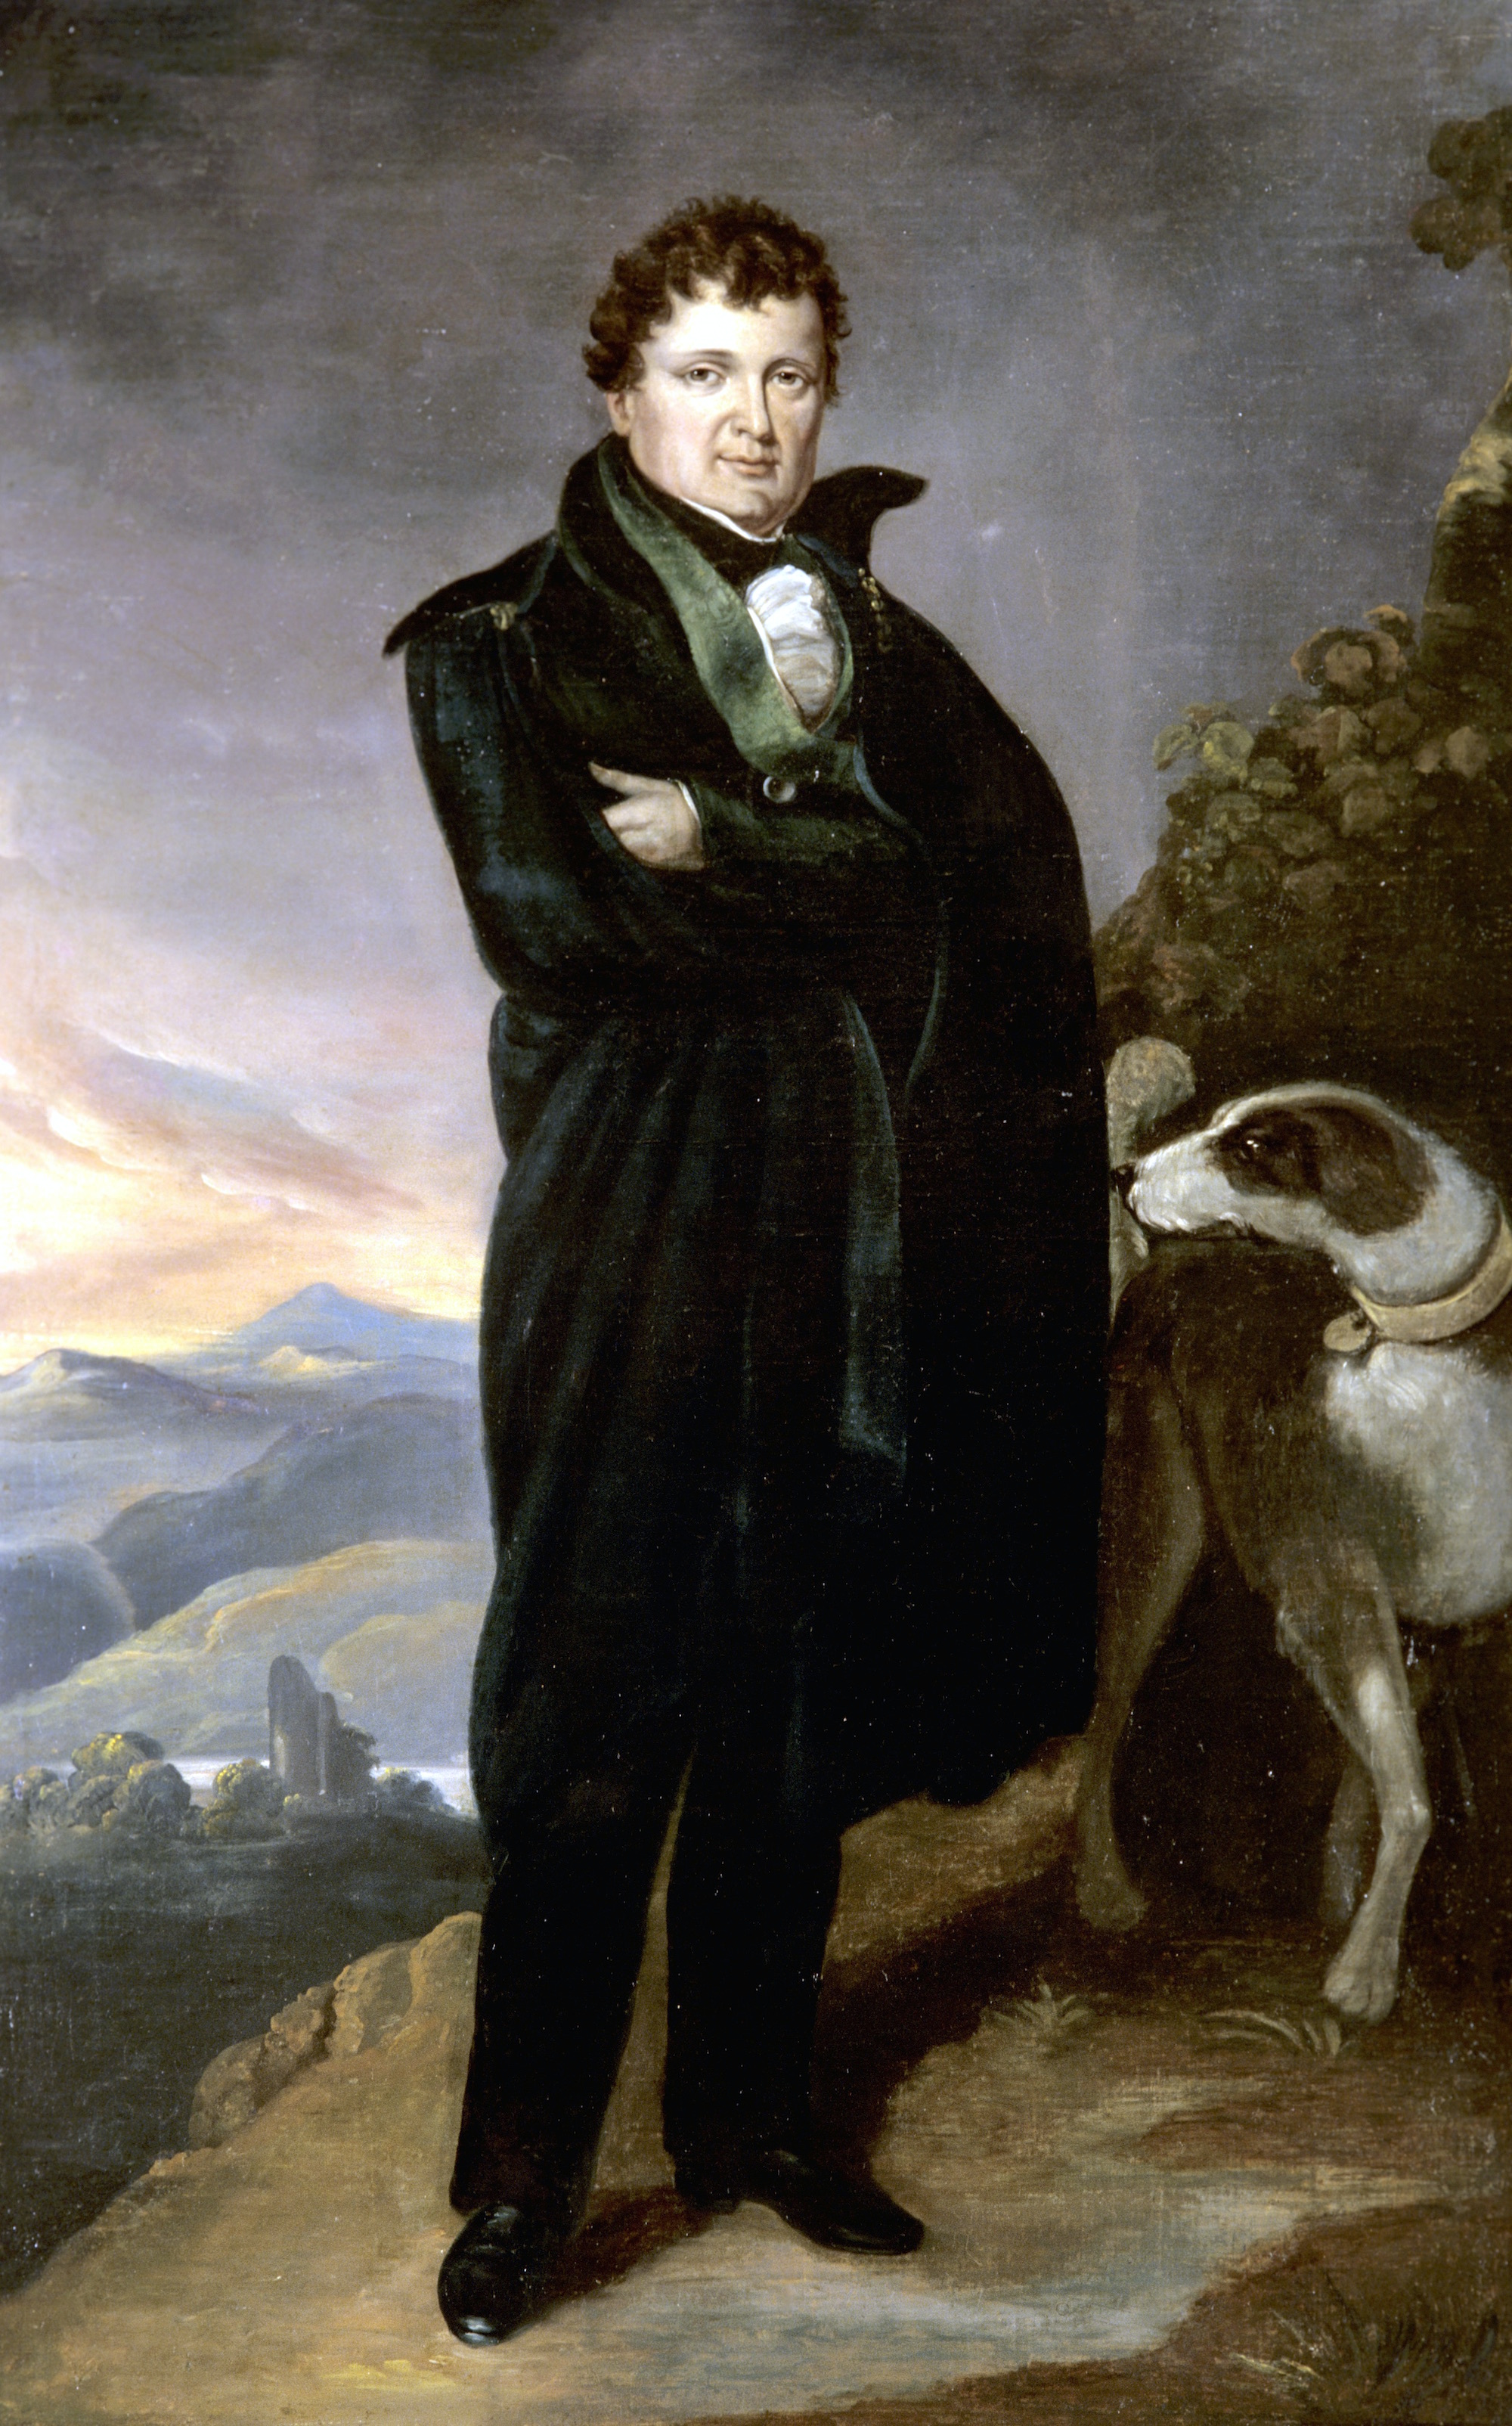 1847 – An ailing Daniel O'Connell makes his final speech to House of  Commons pleading for help for a starving Ireland.